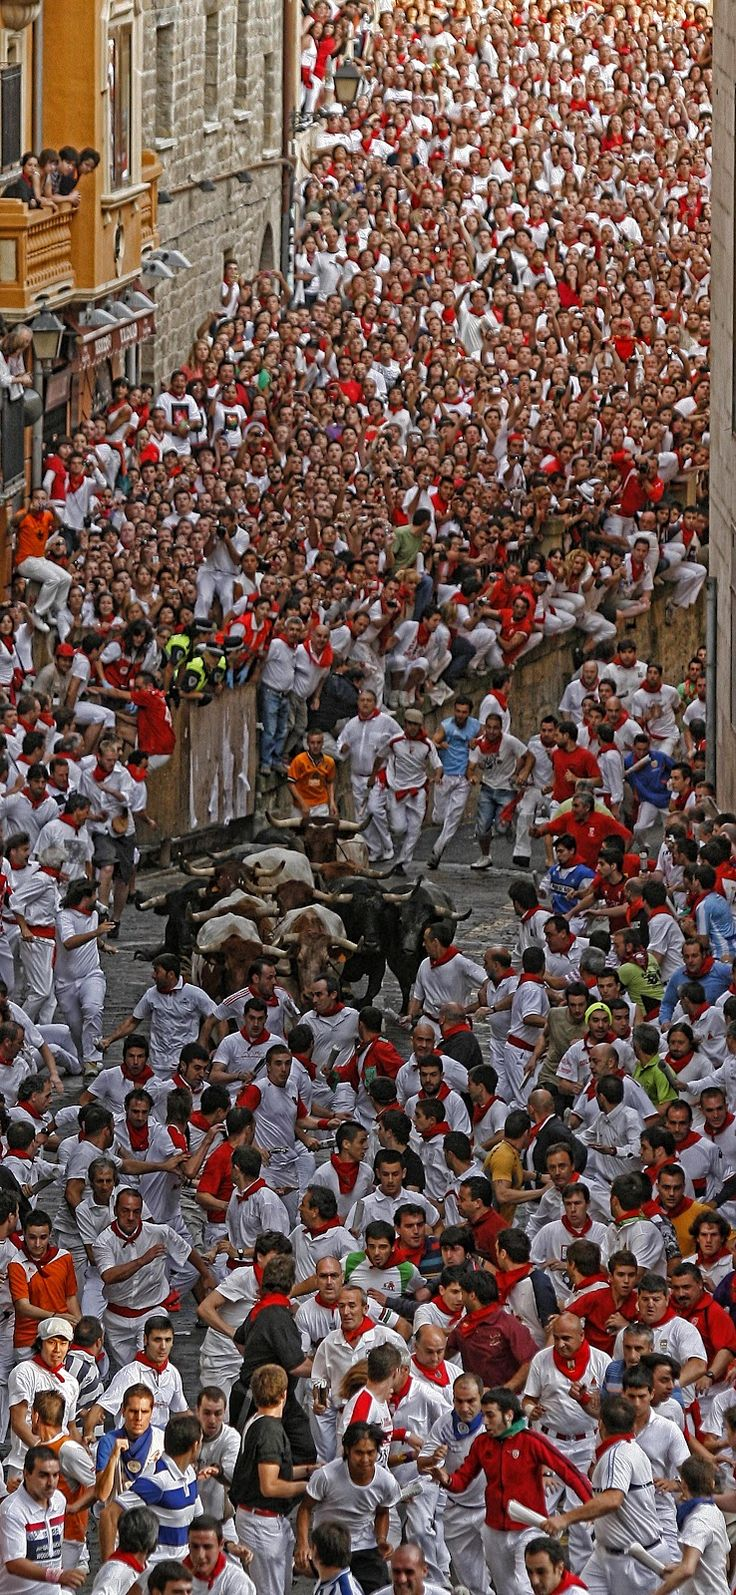 Encierro. (Running of the bulls). San Fermin, Pamplona. Spain